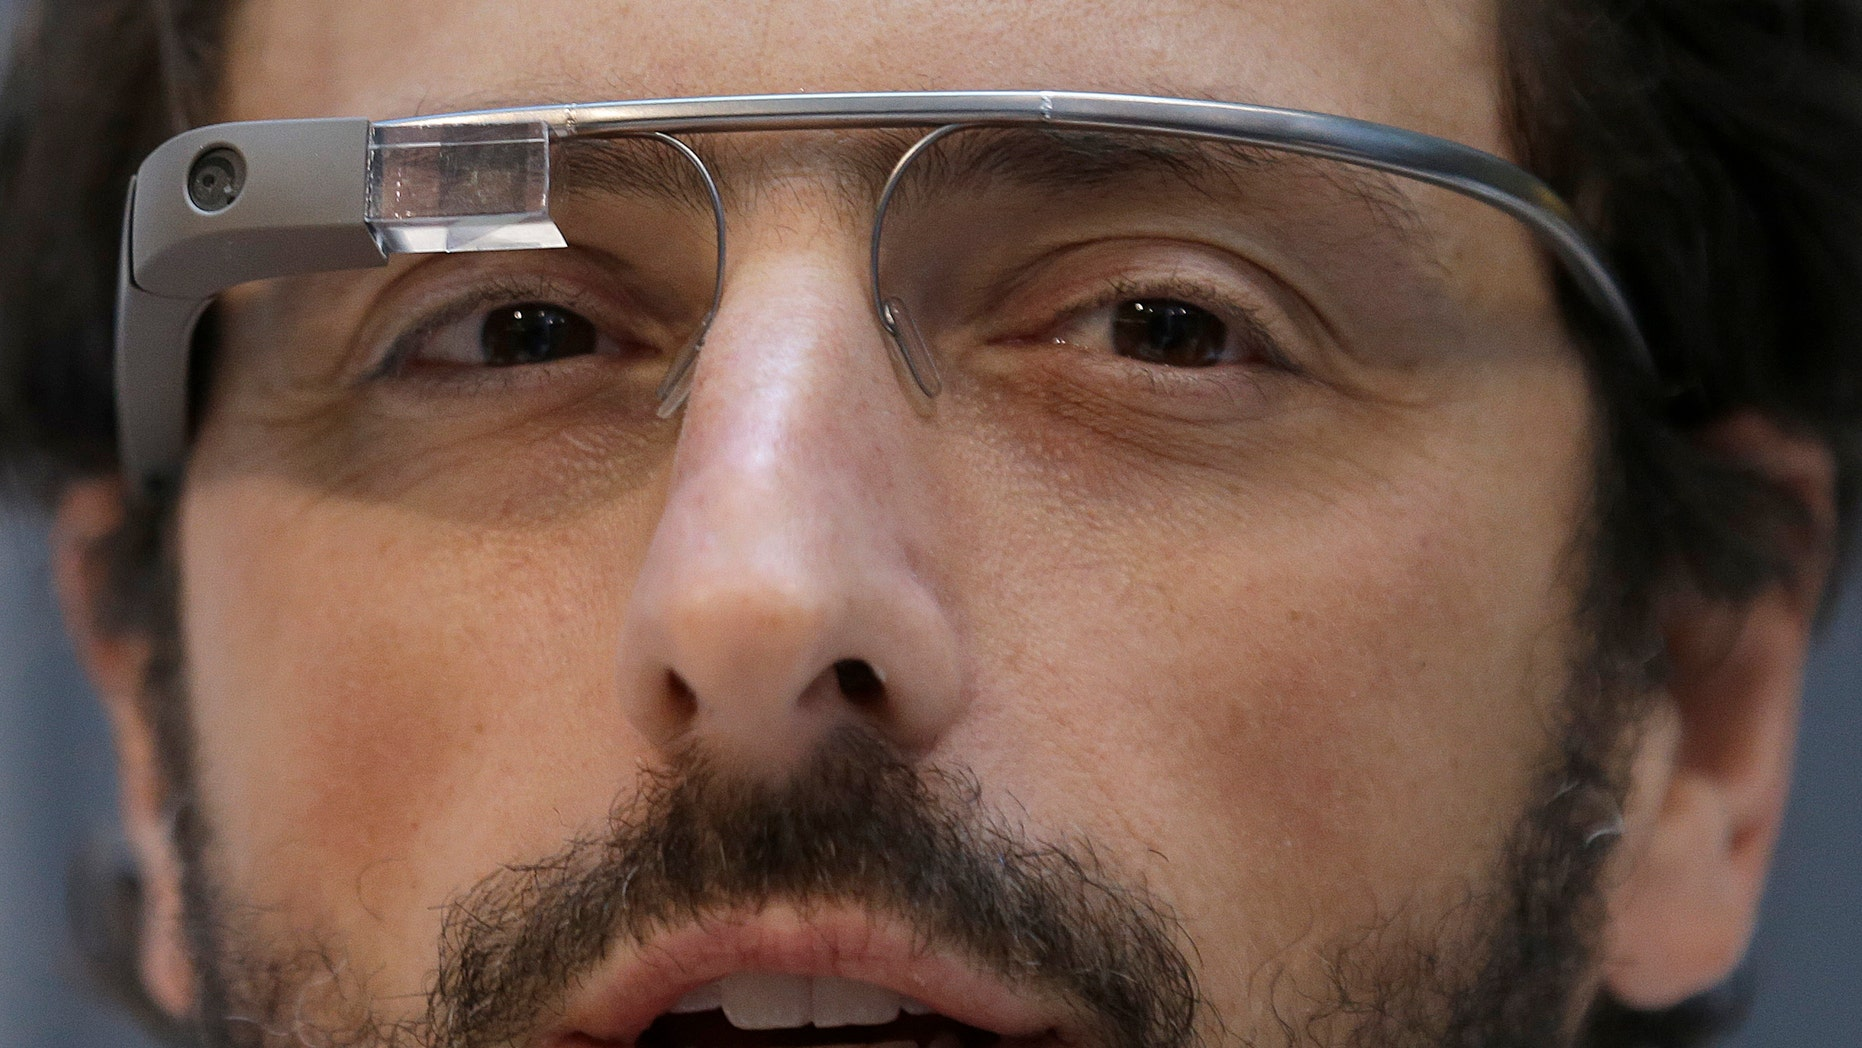 Google co-founder Sergey Brin wears Google Glass glasses at an announcement for the Breakthrough Prize in Life Sciences at Genentech Hall on UCSFs Mission Bay campus in San Francisco, Wednesday, Feb. 20, 2013. (AP Photo/Jeff Chiu)